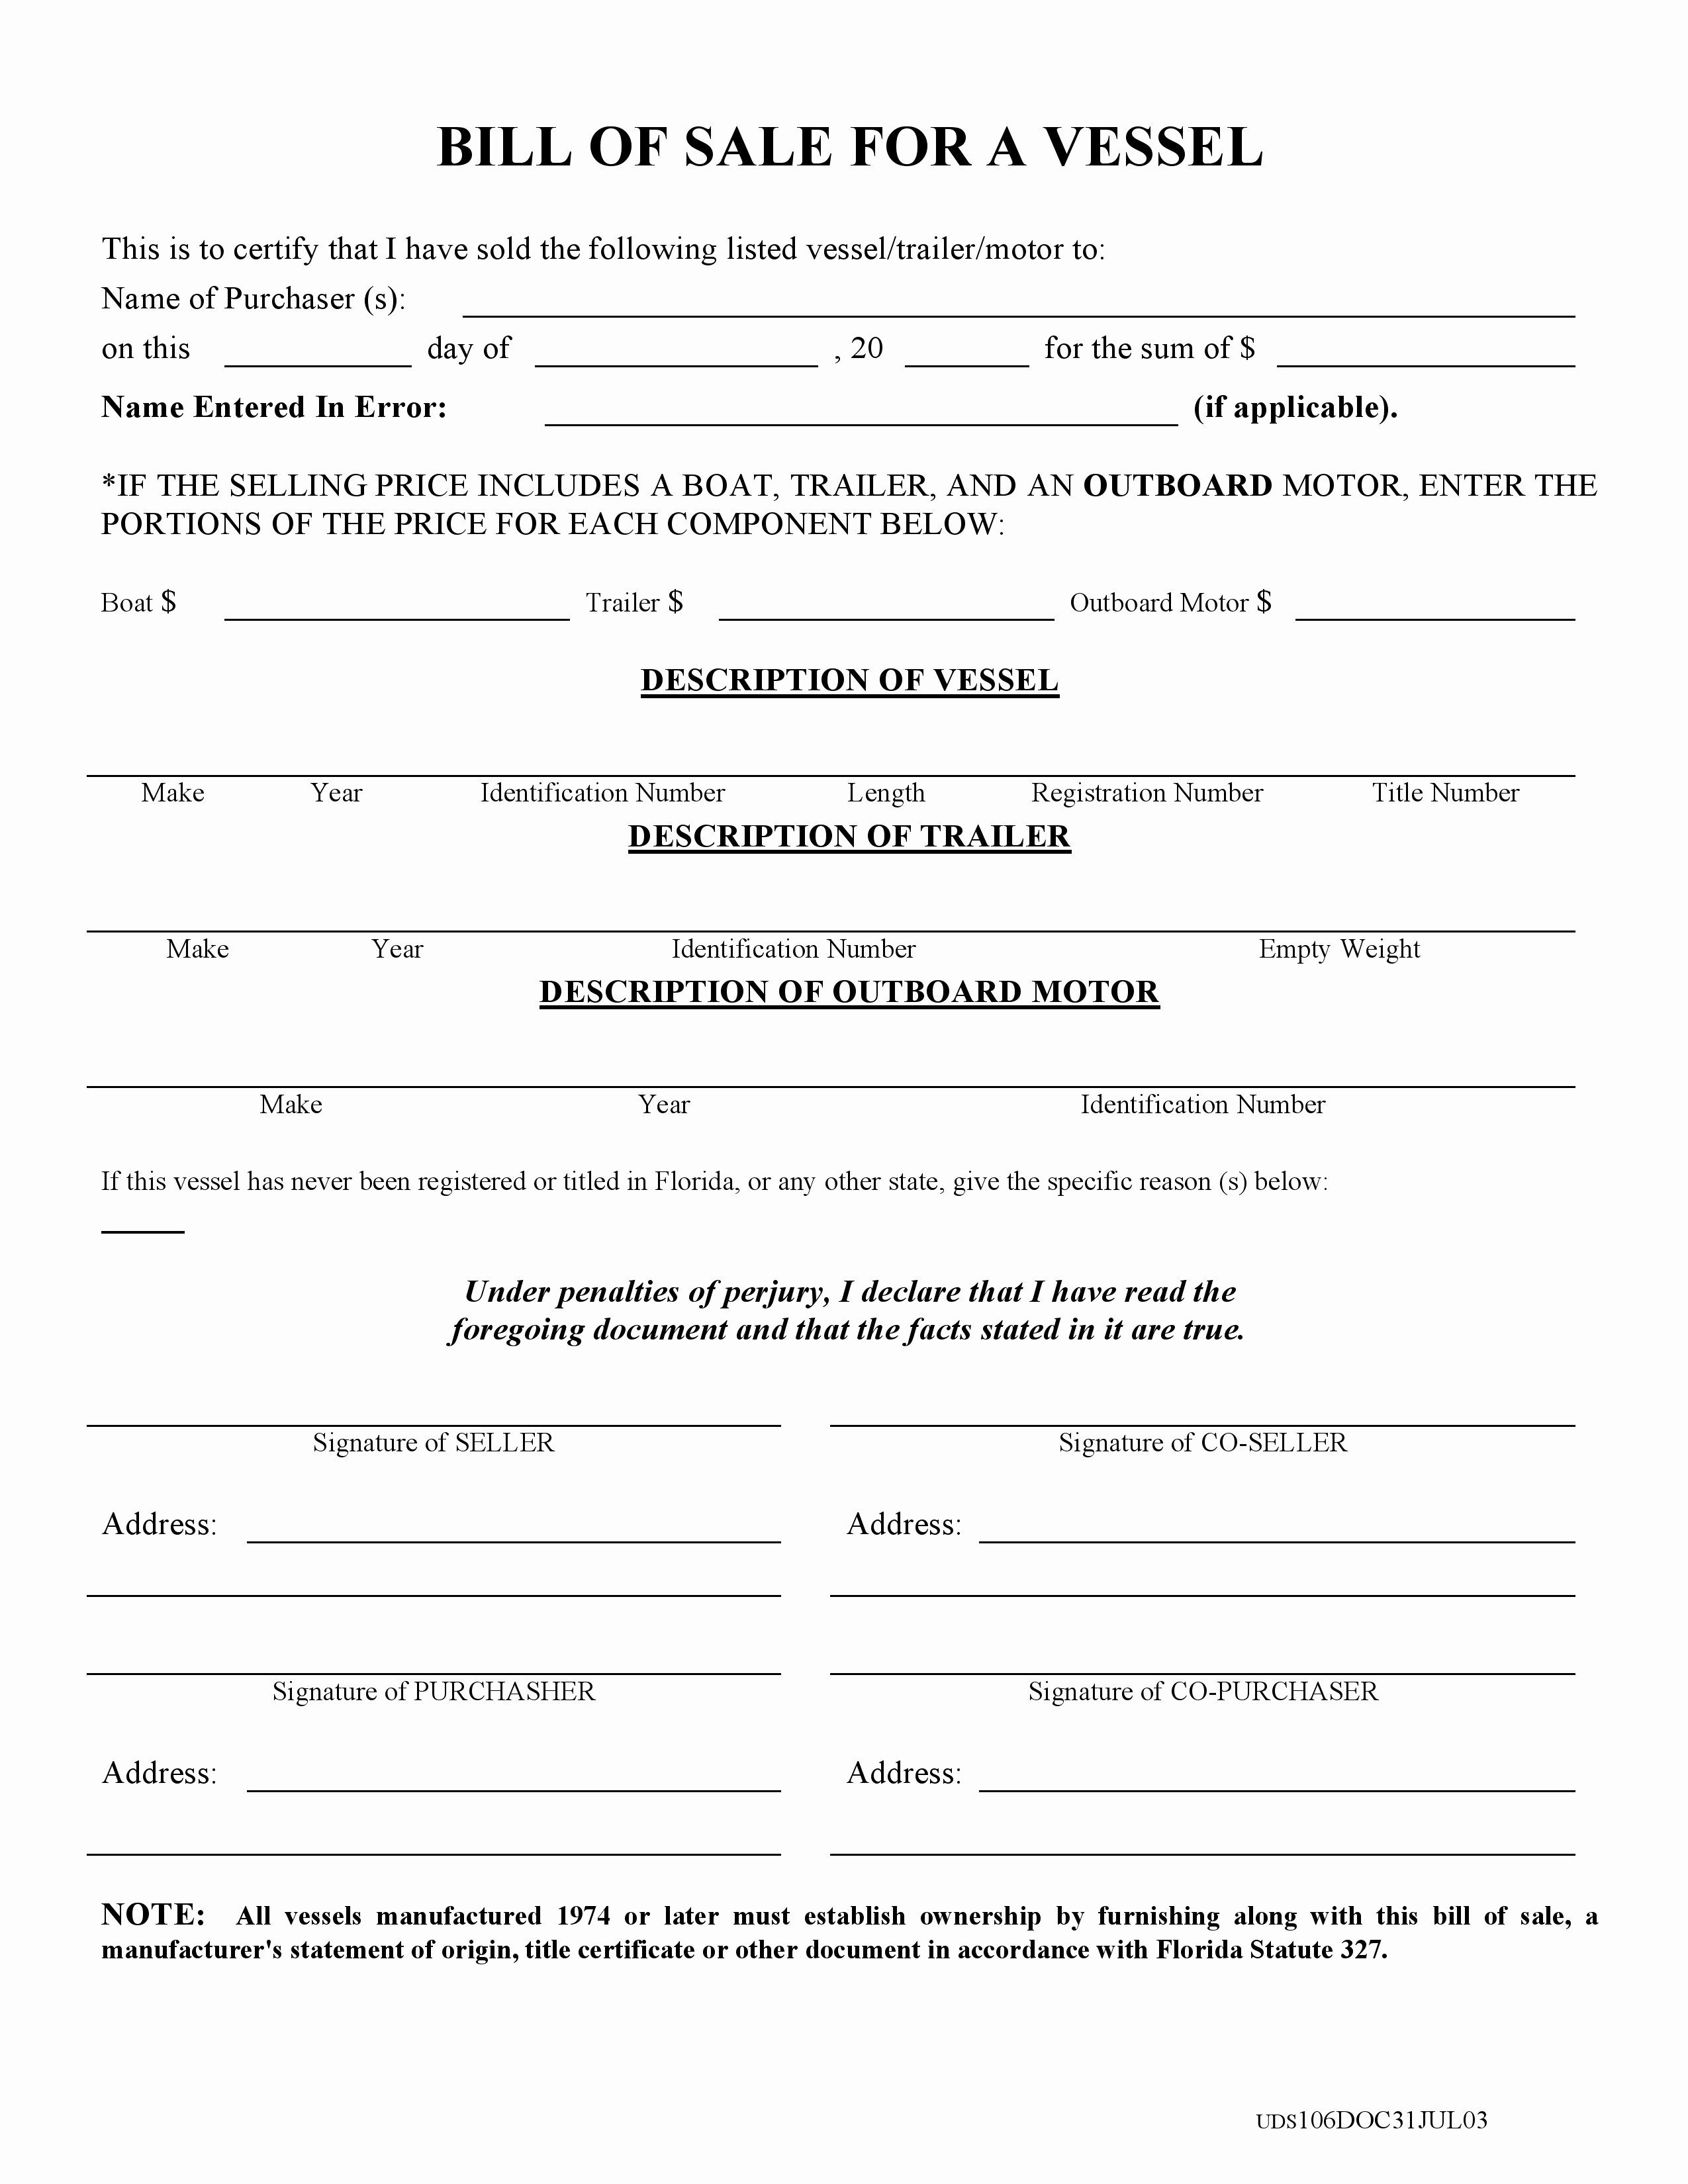 Bill Of Sale form Download Luxury Free Florida Boat Bill Of Sale form Pdf